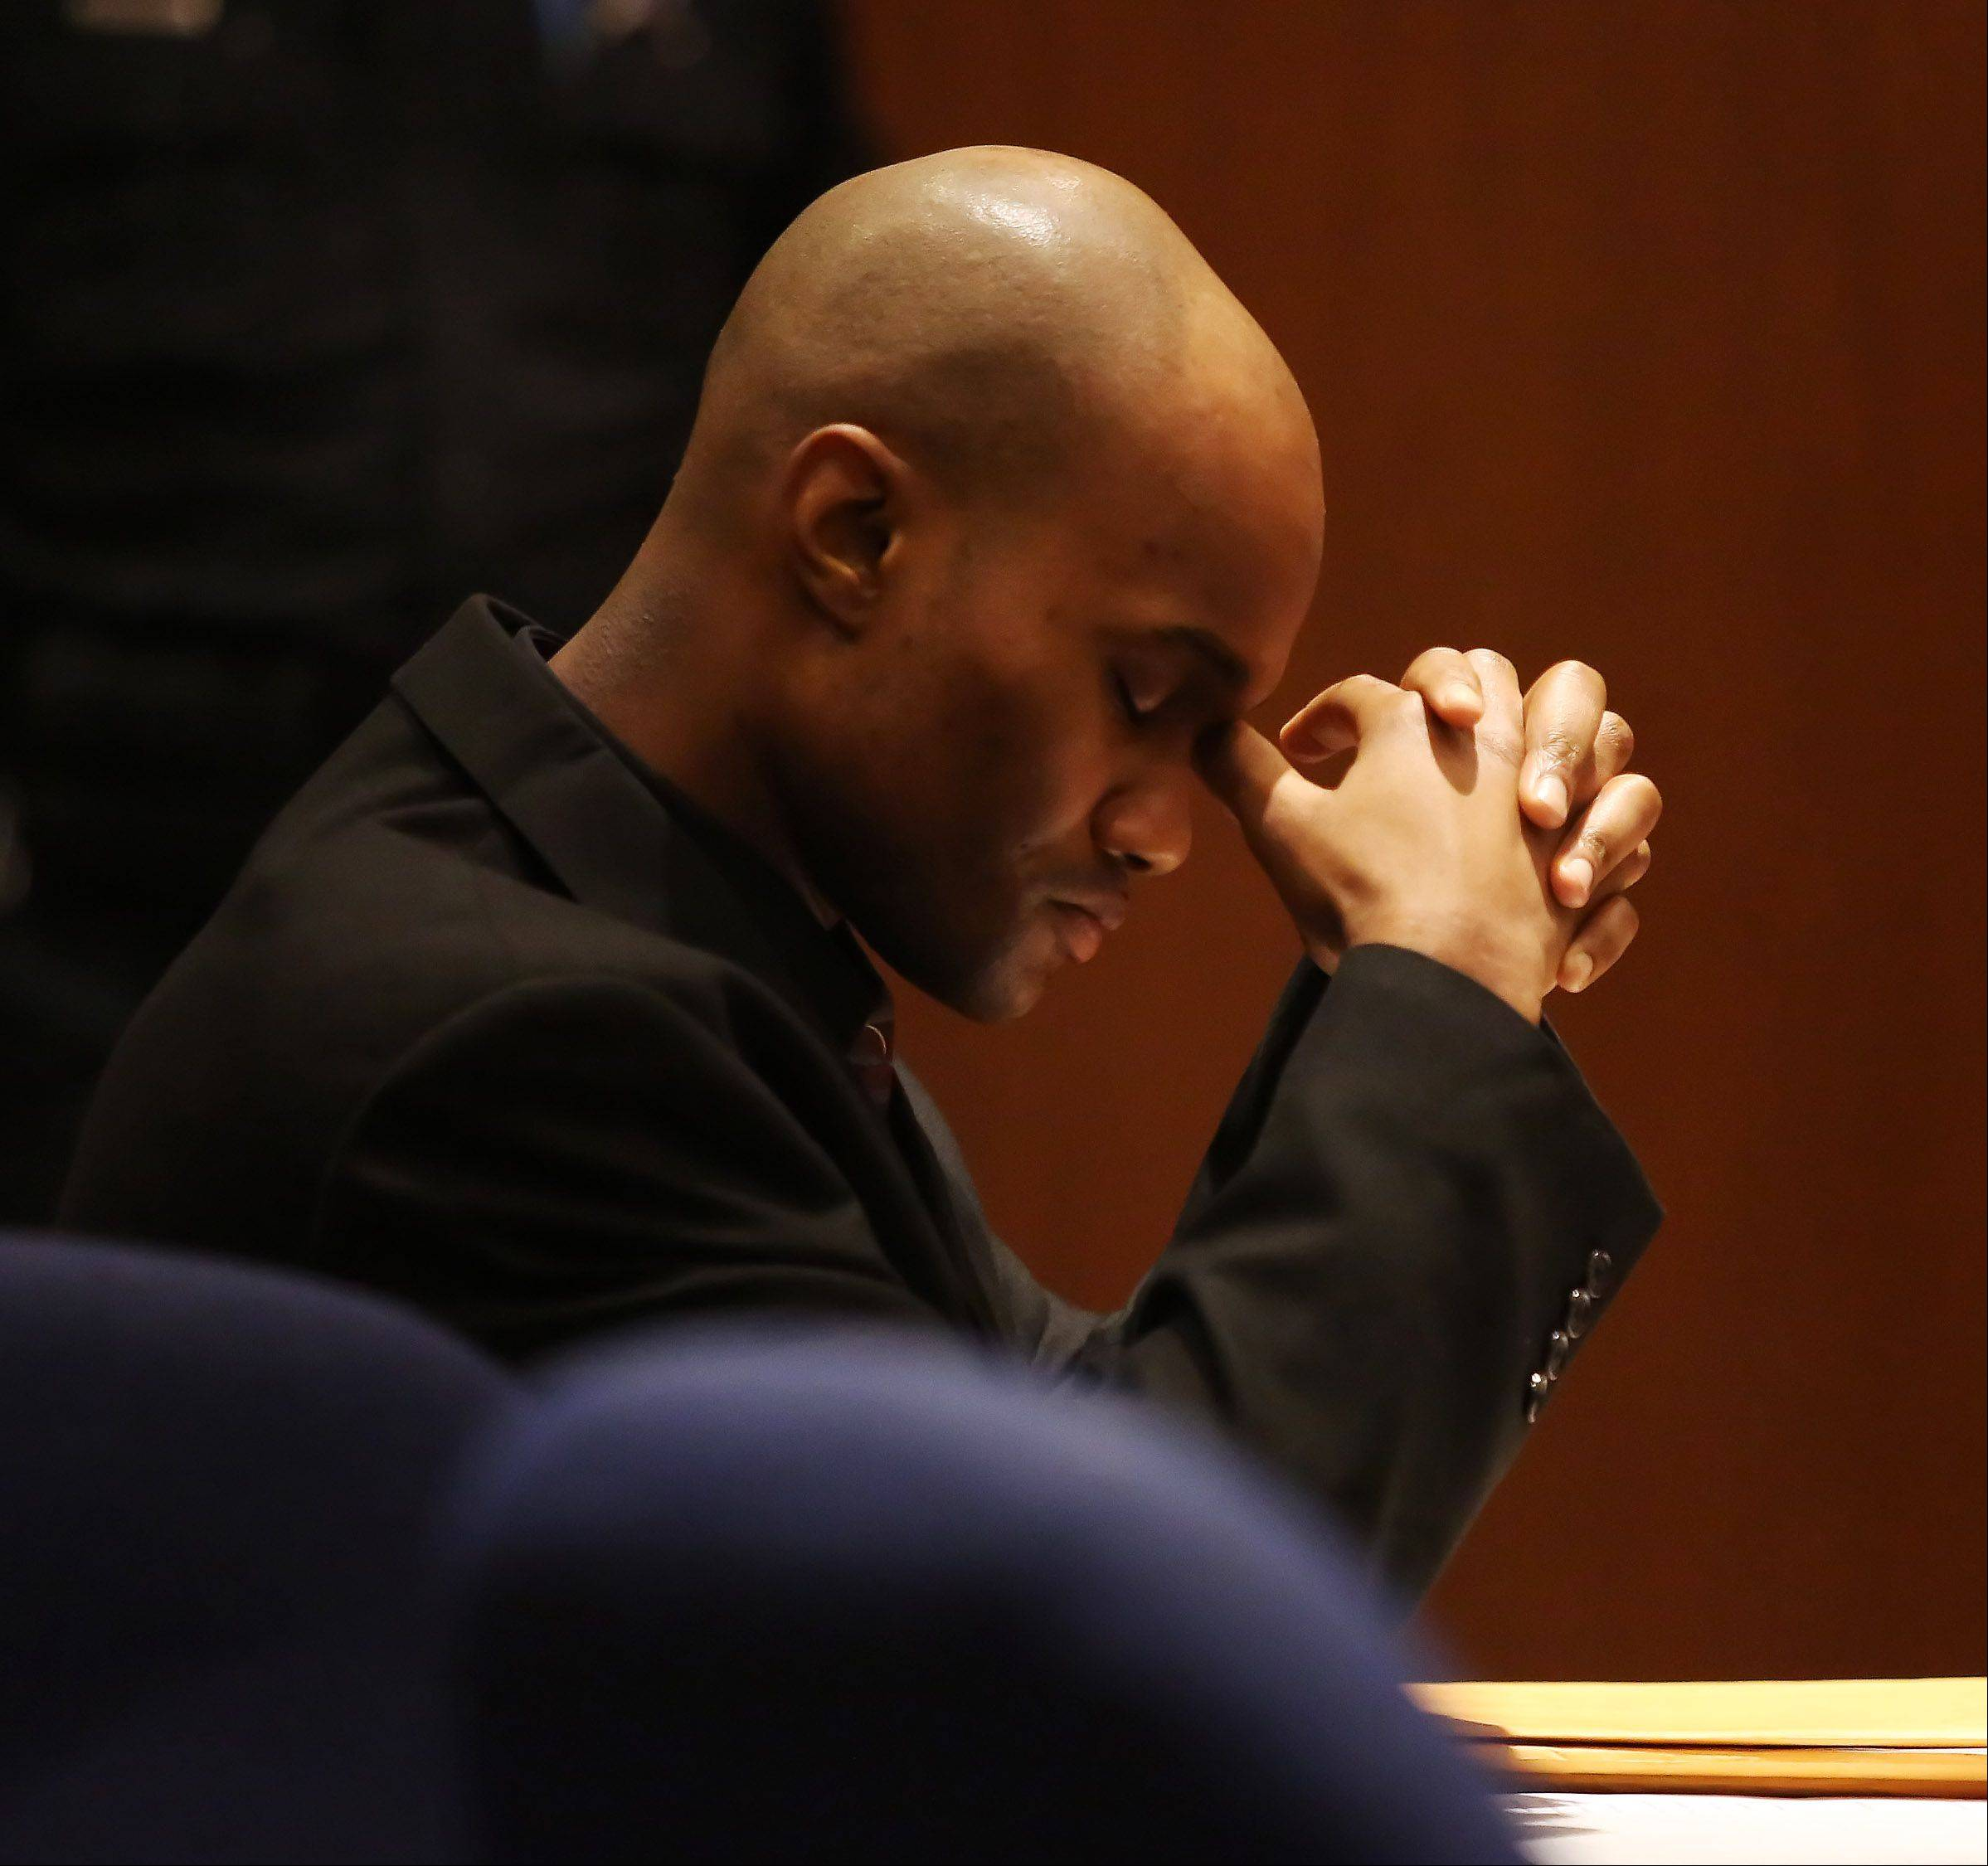 Montego Suggs, shown during his September 2013 murder trial, lost his bid Tuesday to have his 105-year prison sentence reduced. A Lake County judge imposed the sentence last year after Suggs was convicted of the 2007 slaying of a Round Lake Park woman during a robbery. Suggs will likely appeal the sentence and conviction.